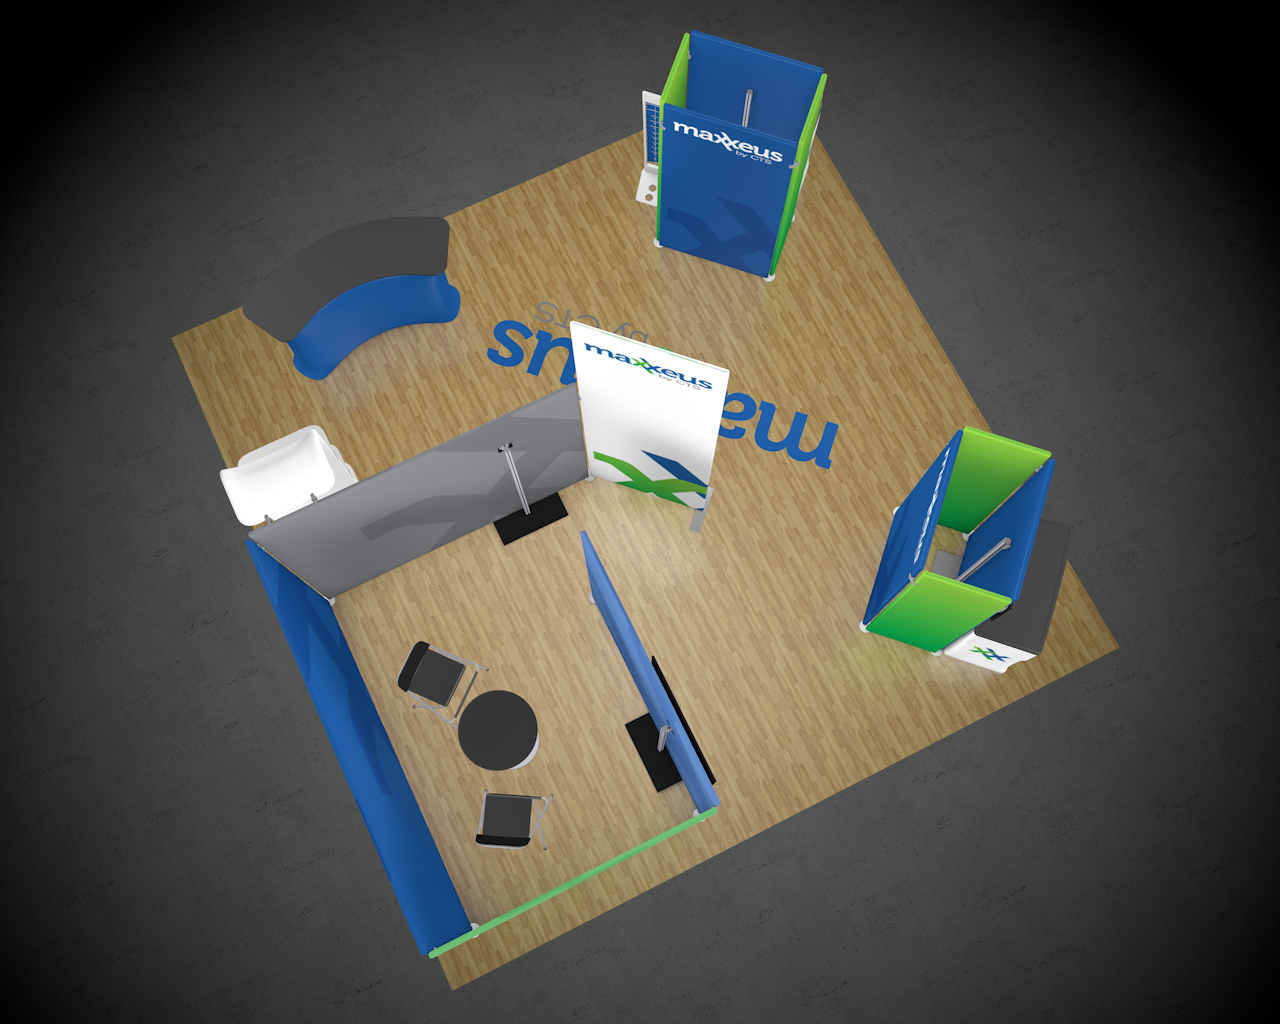 20x20 Trade Show Booth Top View 1 Rendering